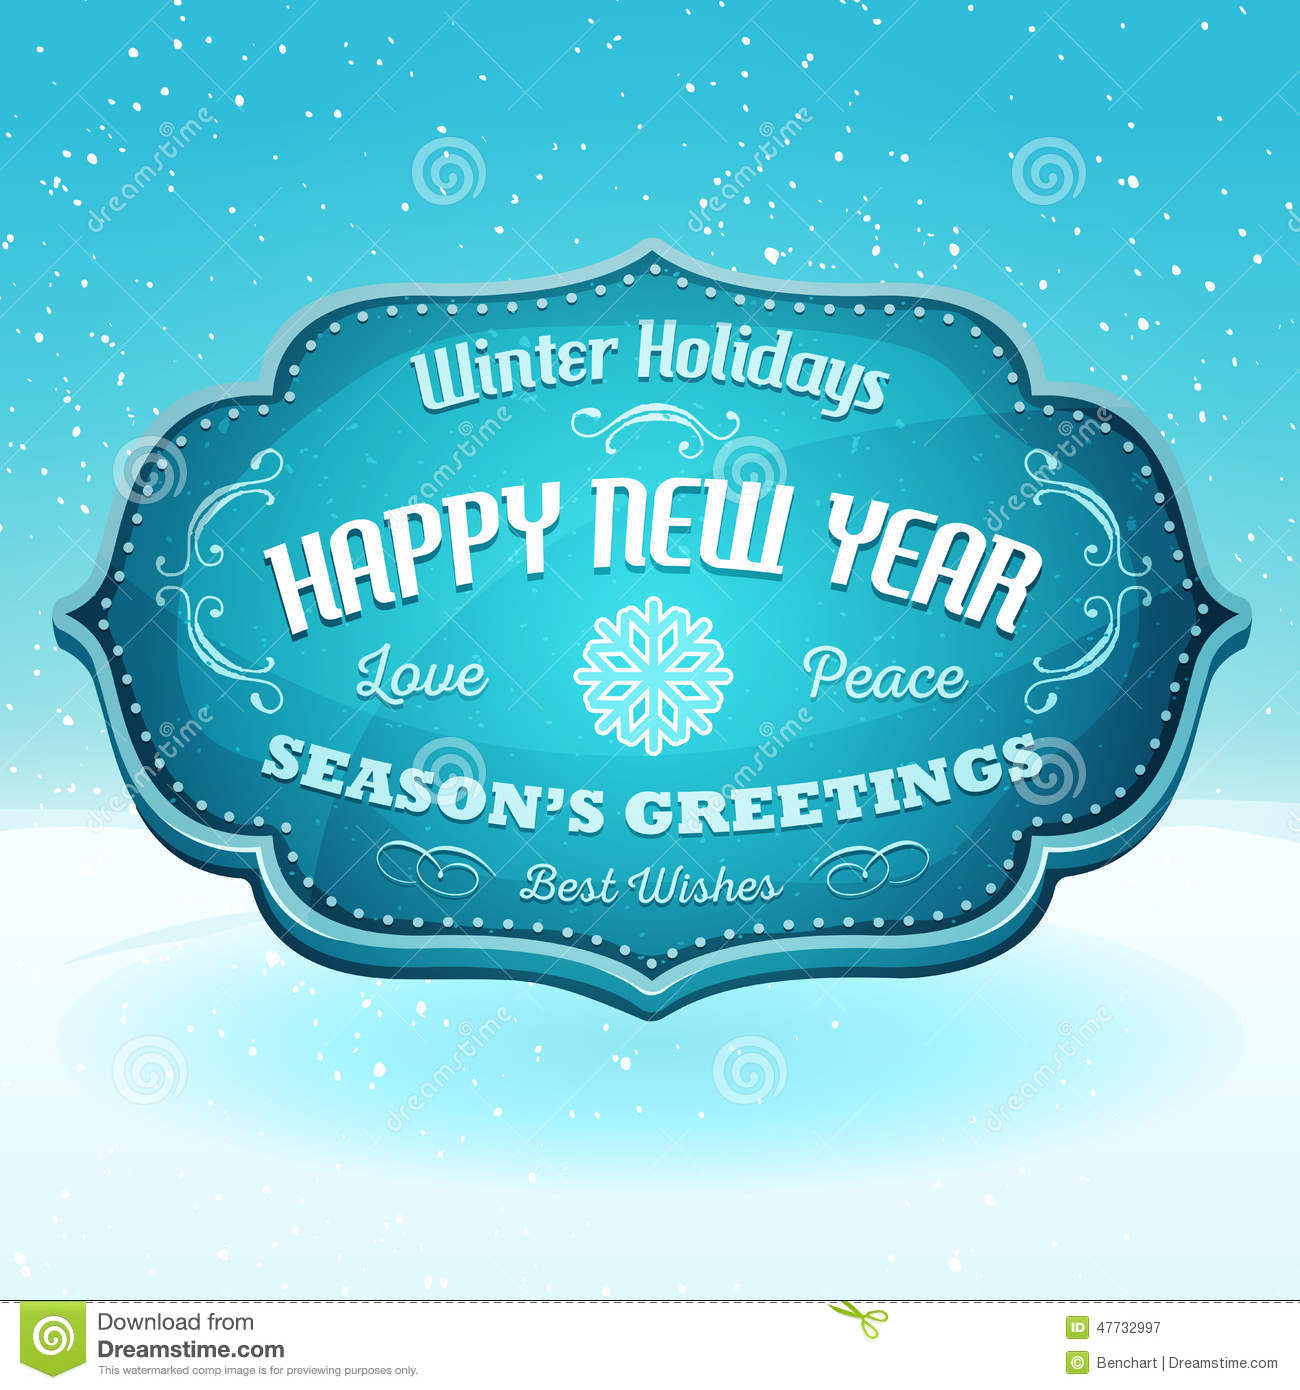 Happy new year and seasons greetings banner stock vector happy new year and seasons greetings banner kristyandbryce Choice Image